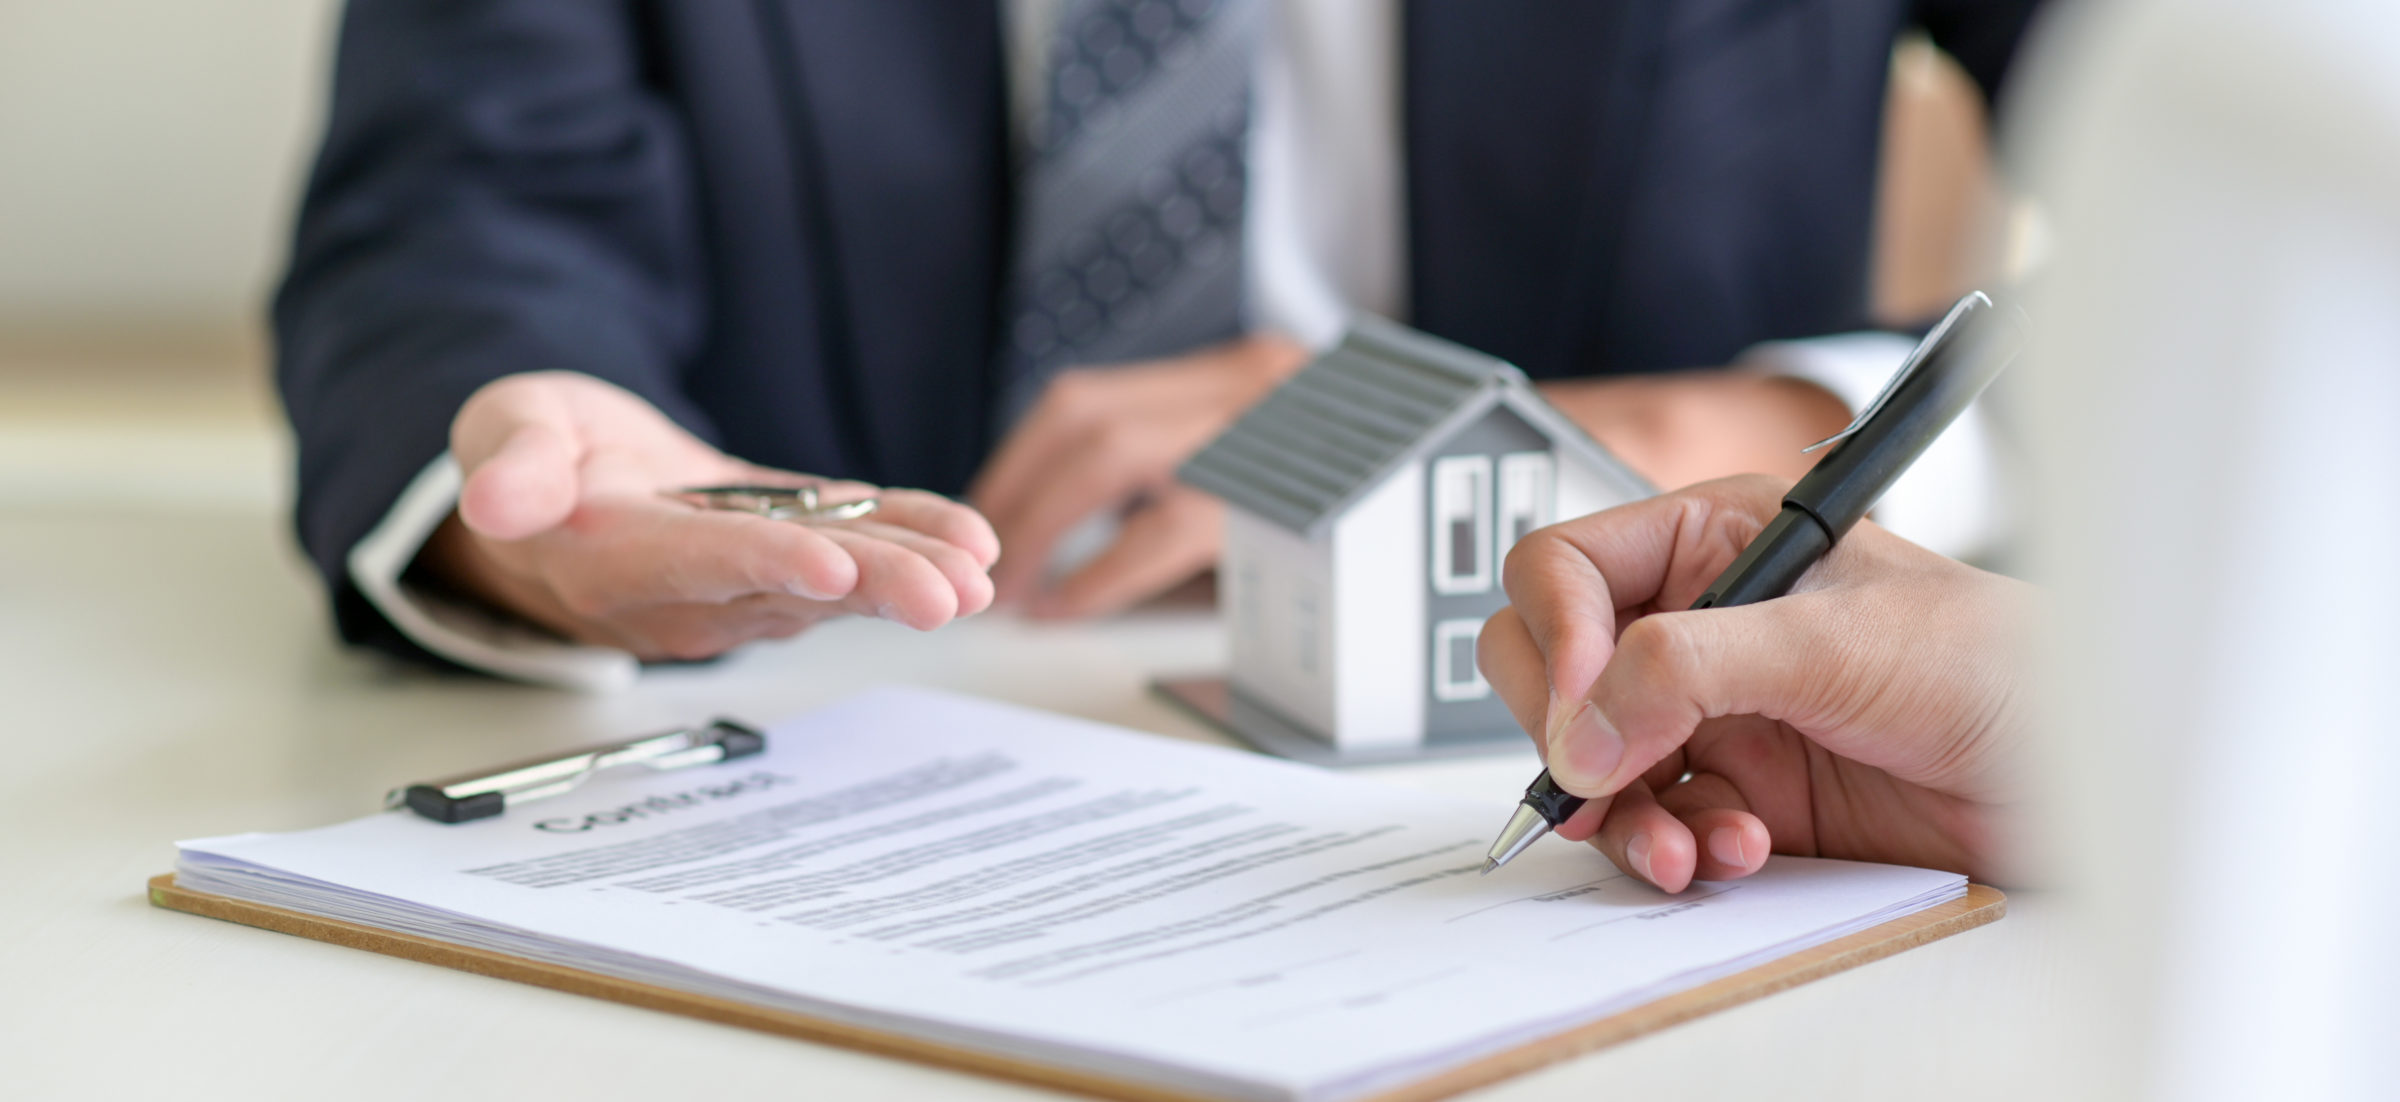 signing a loan for a home purchase CVQDFTV